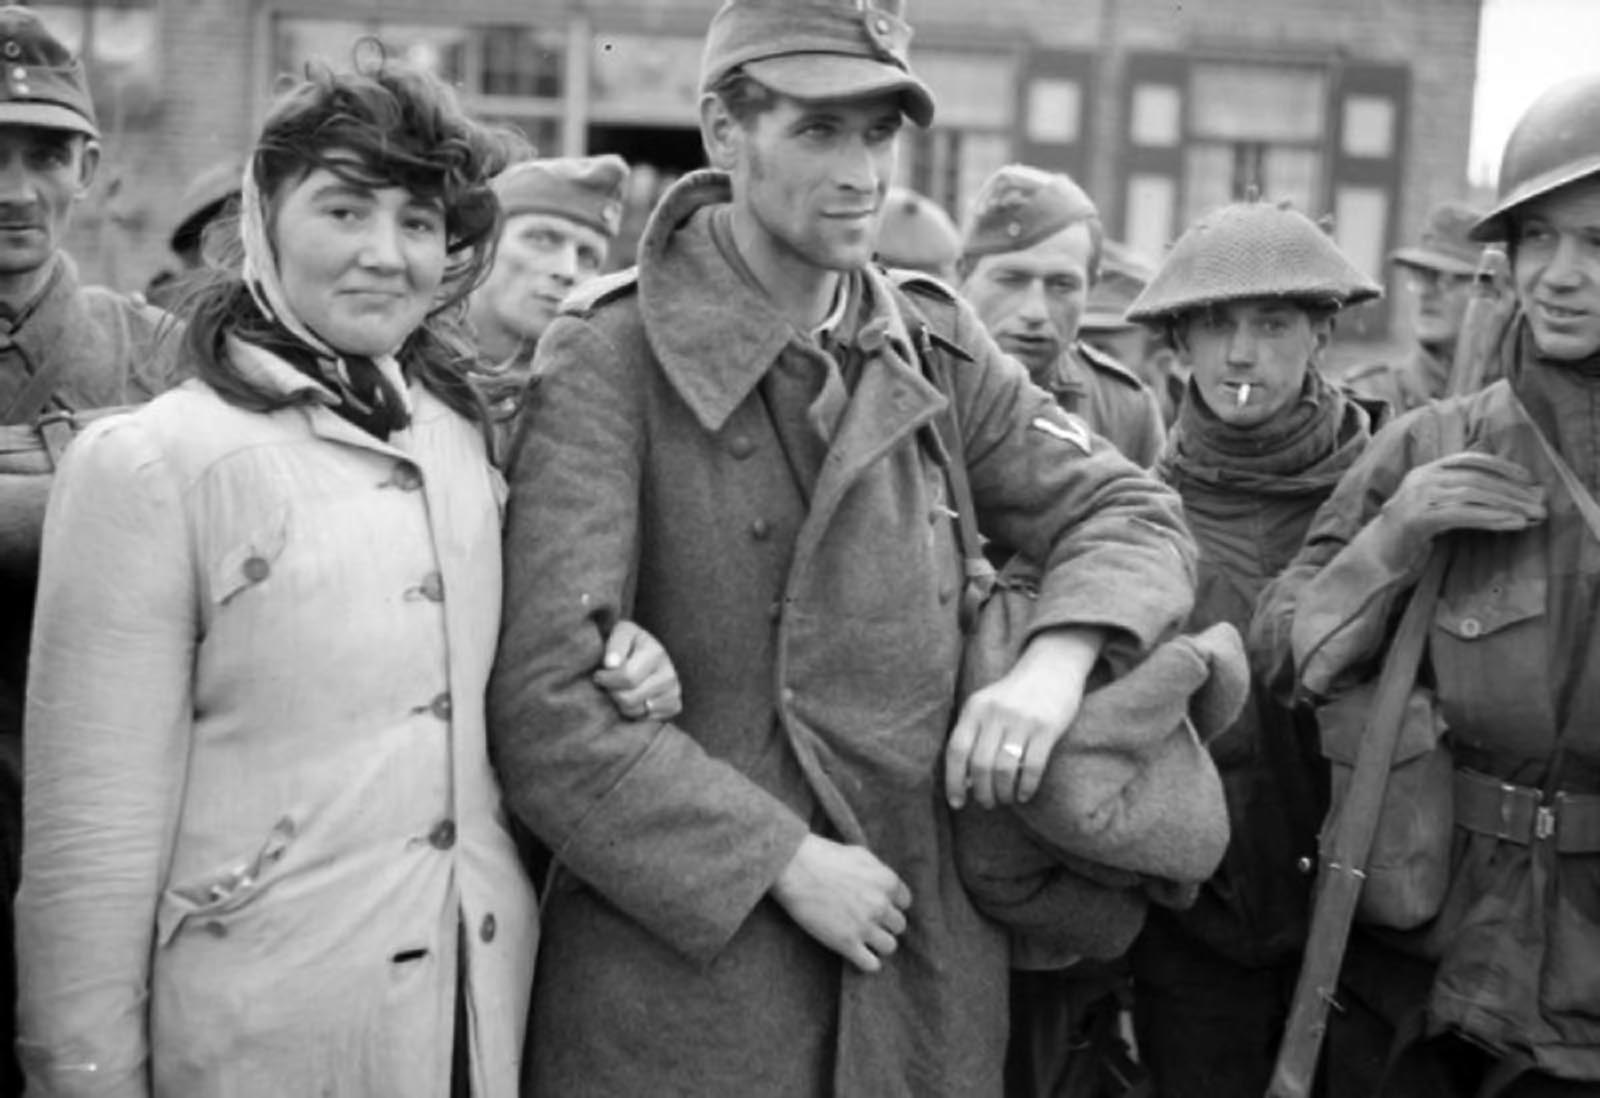 Afbeeldingsresultaat voor dutch women and german soldiers ww2